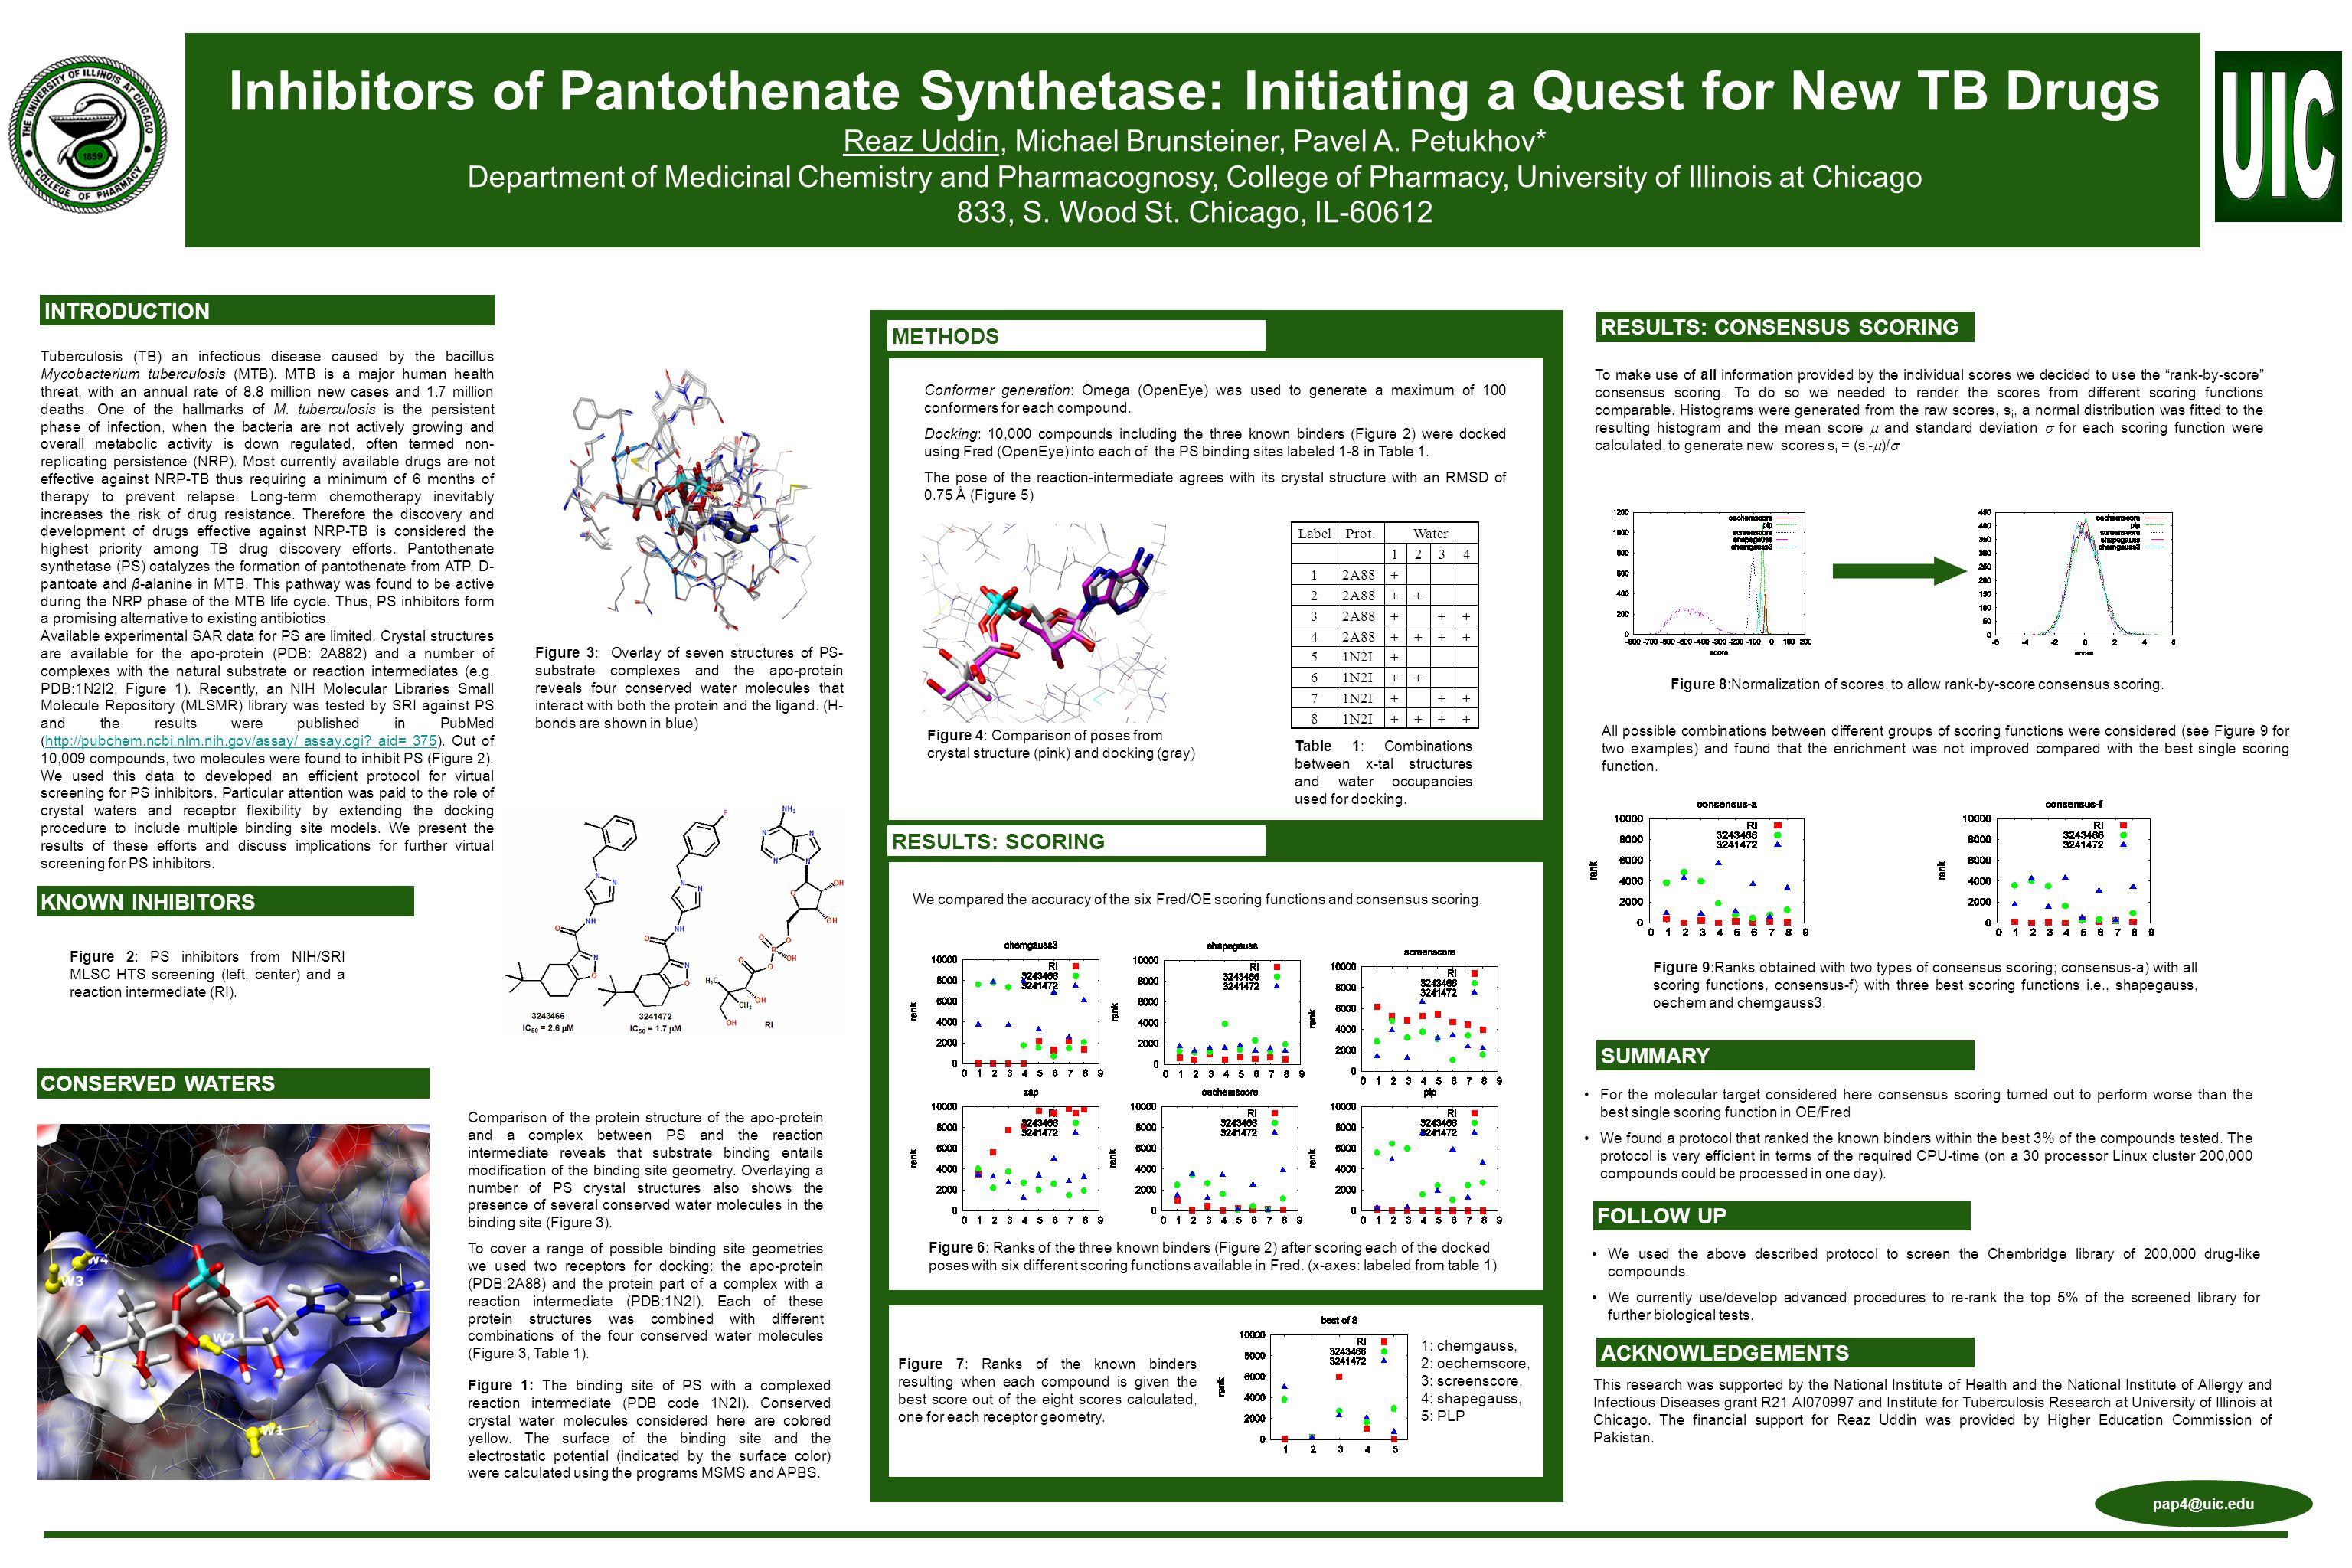 Inhibitors of Pantothenate Synthetase: Initiating a Quest for New TB Drugs Reaz Uddin, Michael Brunsteiner, Pavel A.